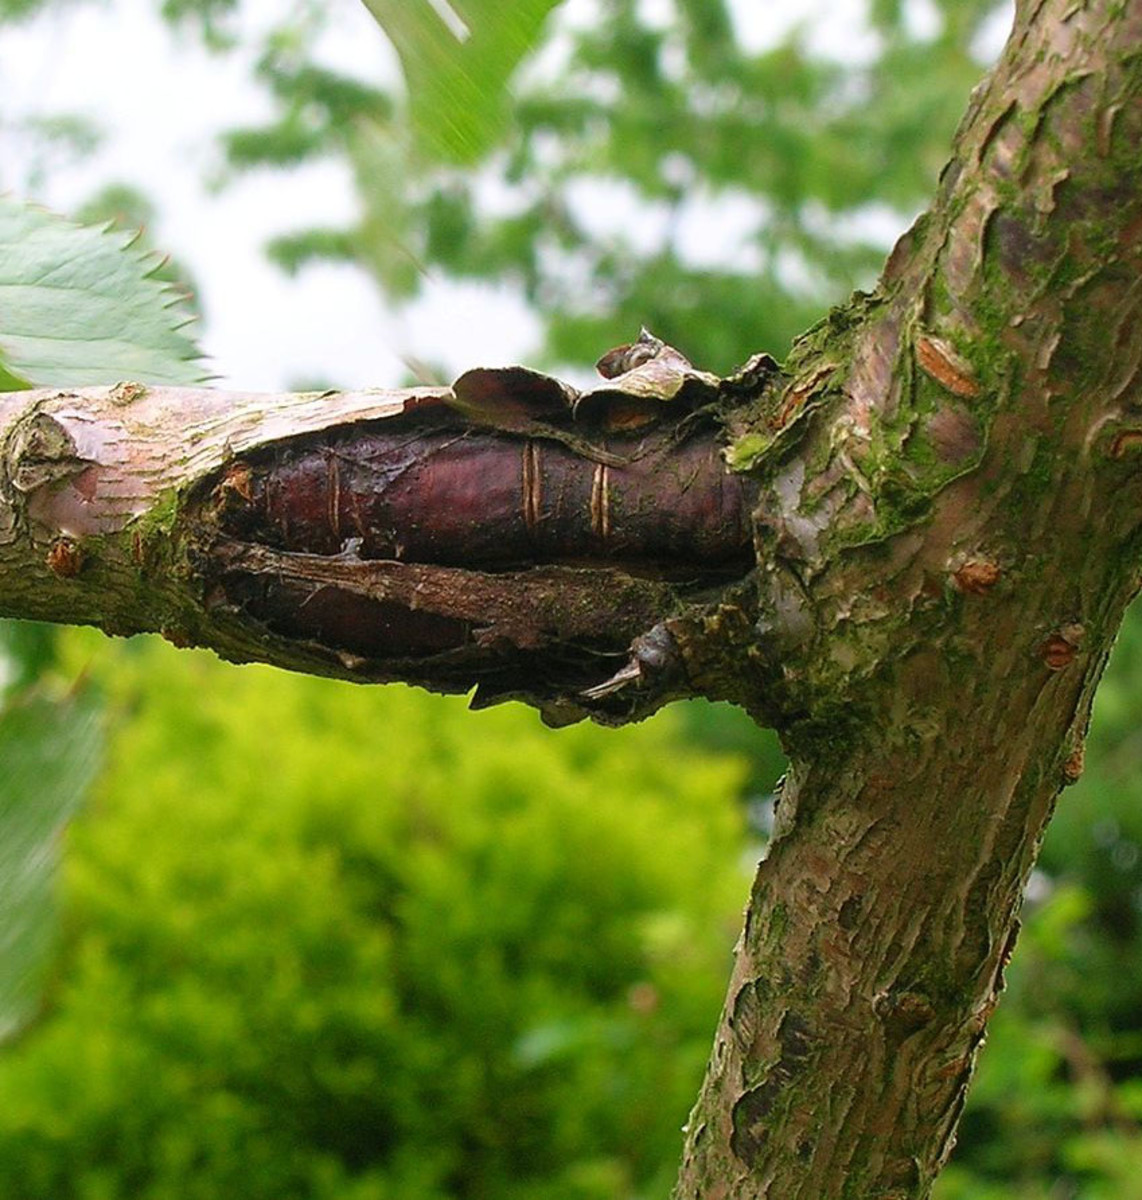 Canker caused by bacteria on a cherry tree.